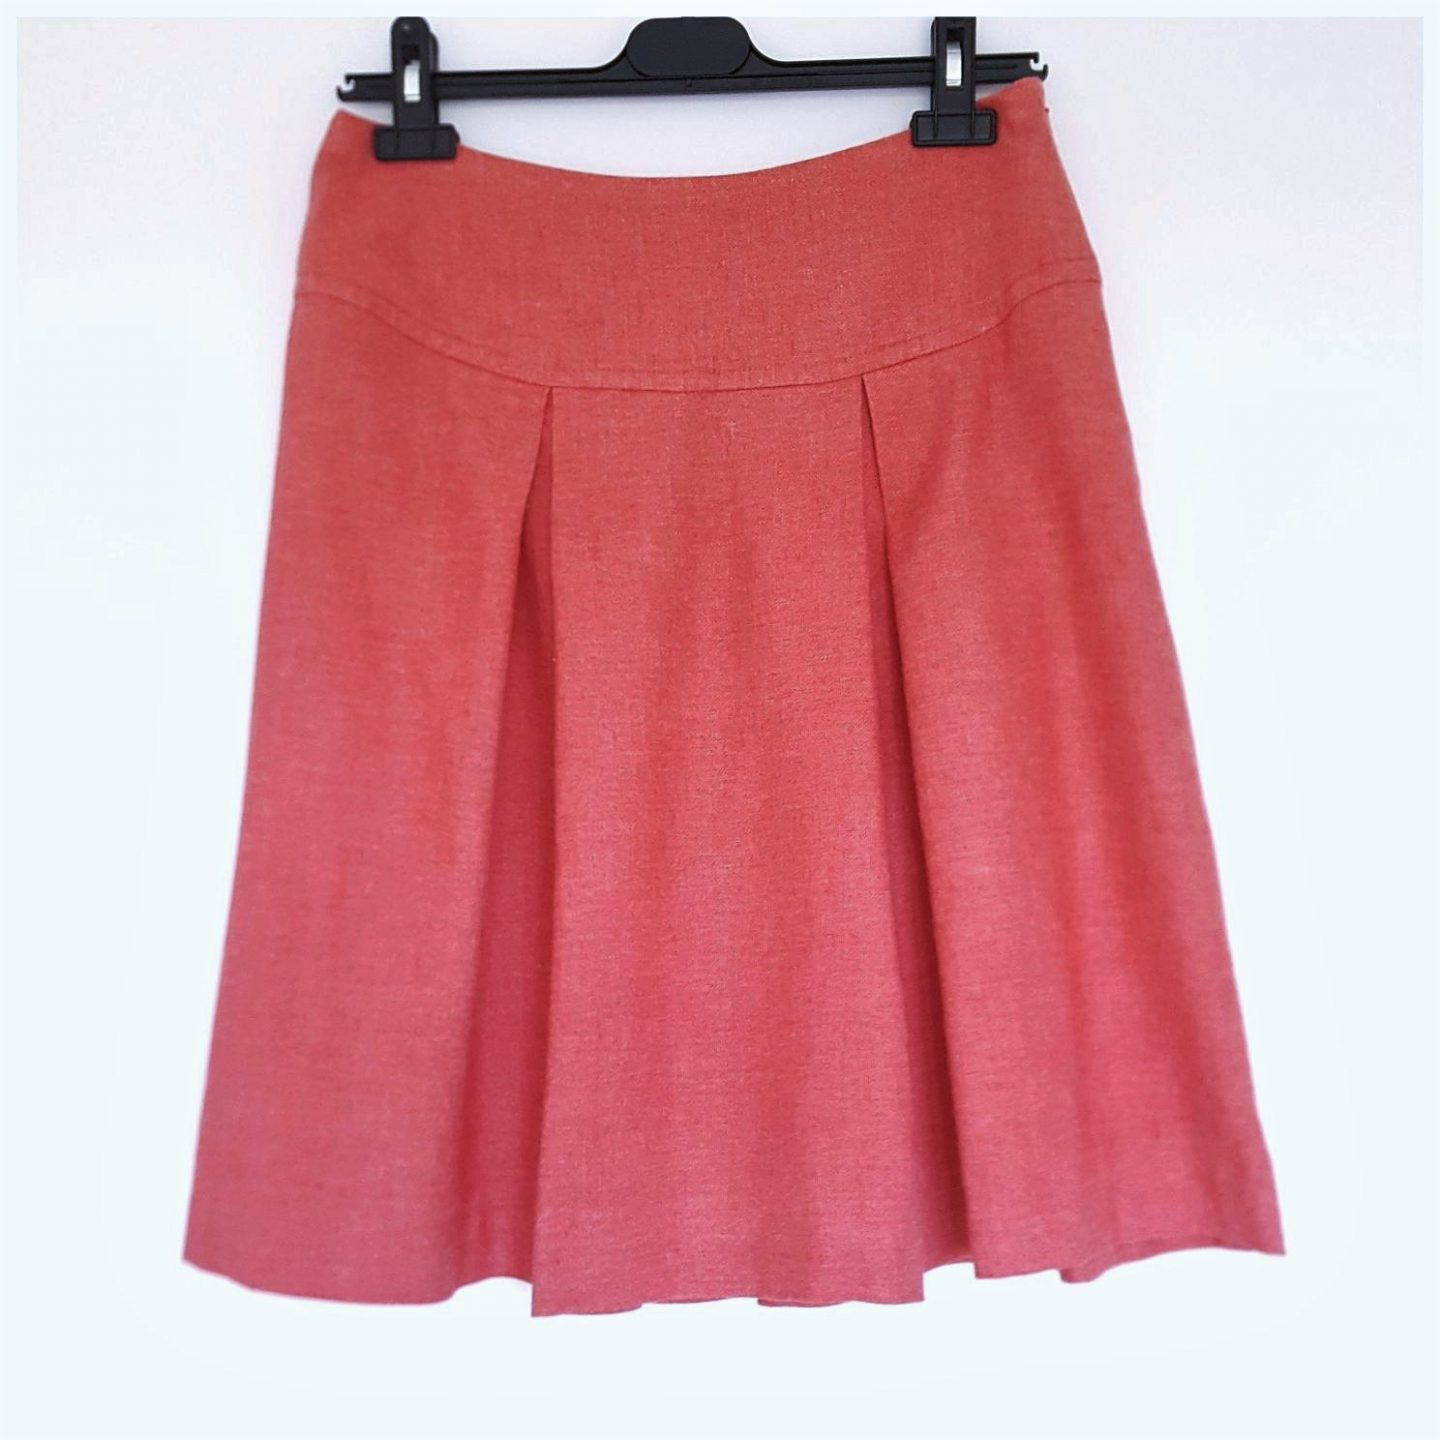 Coral skirt with pleats